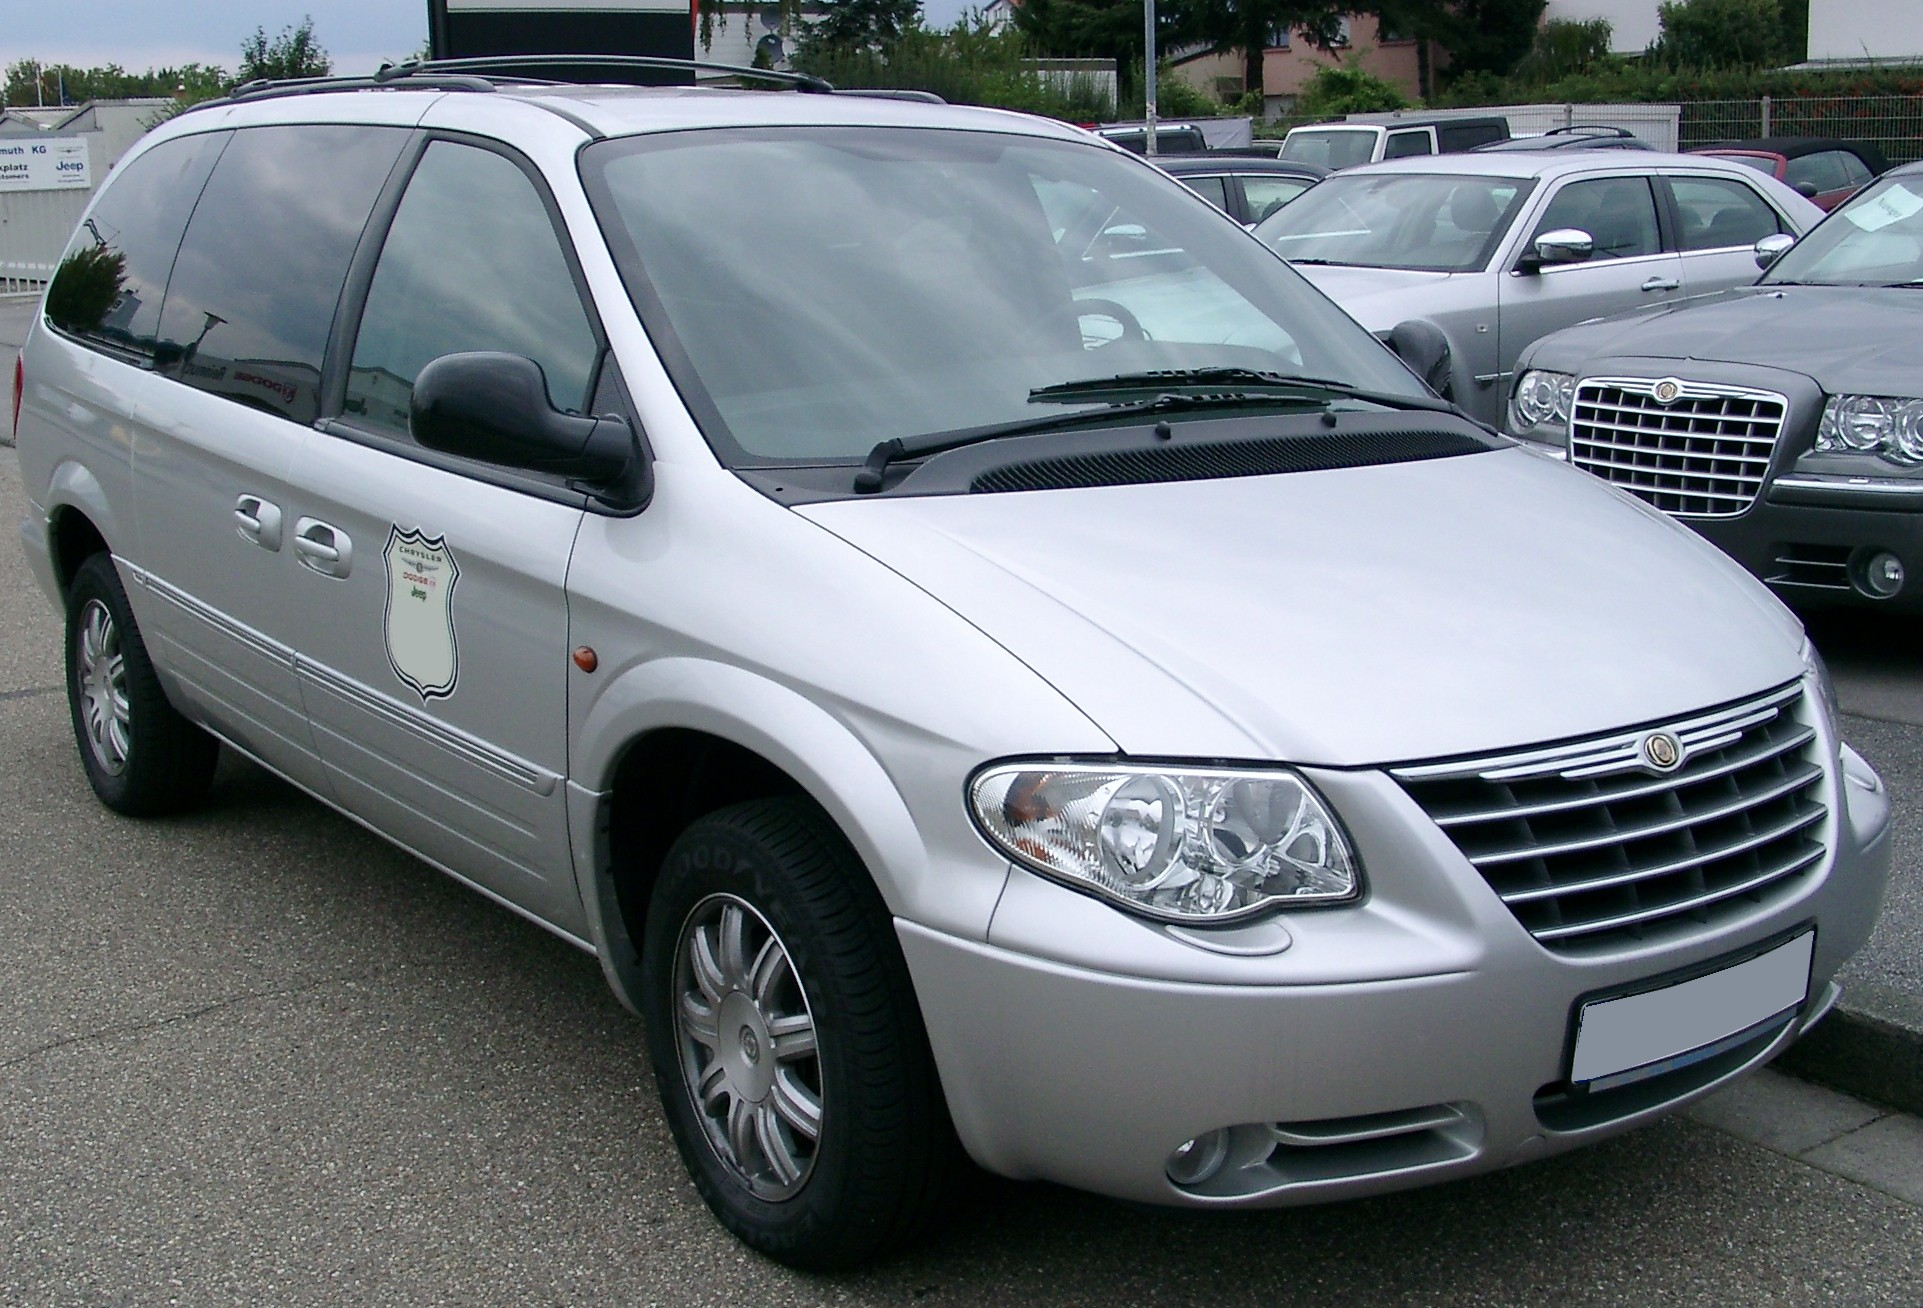 chrysler grand voyager information and photos momentcar. Black Bedroom Furniture Sets. Home Design Ideas